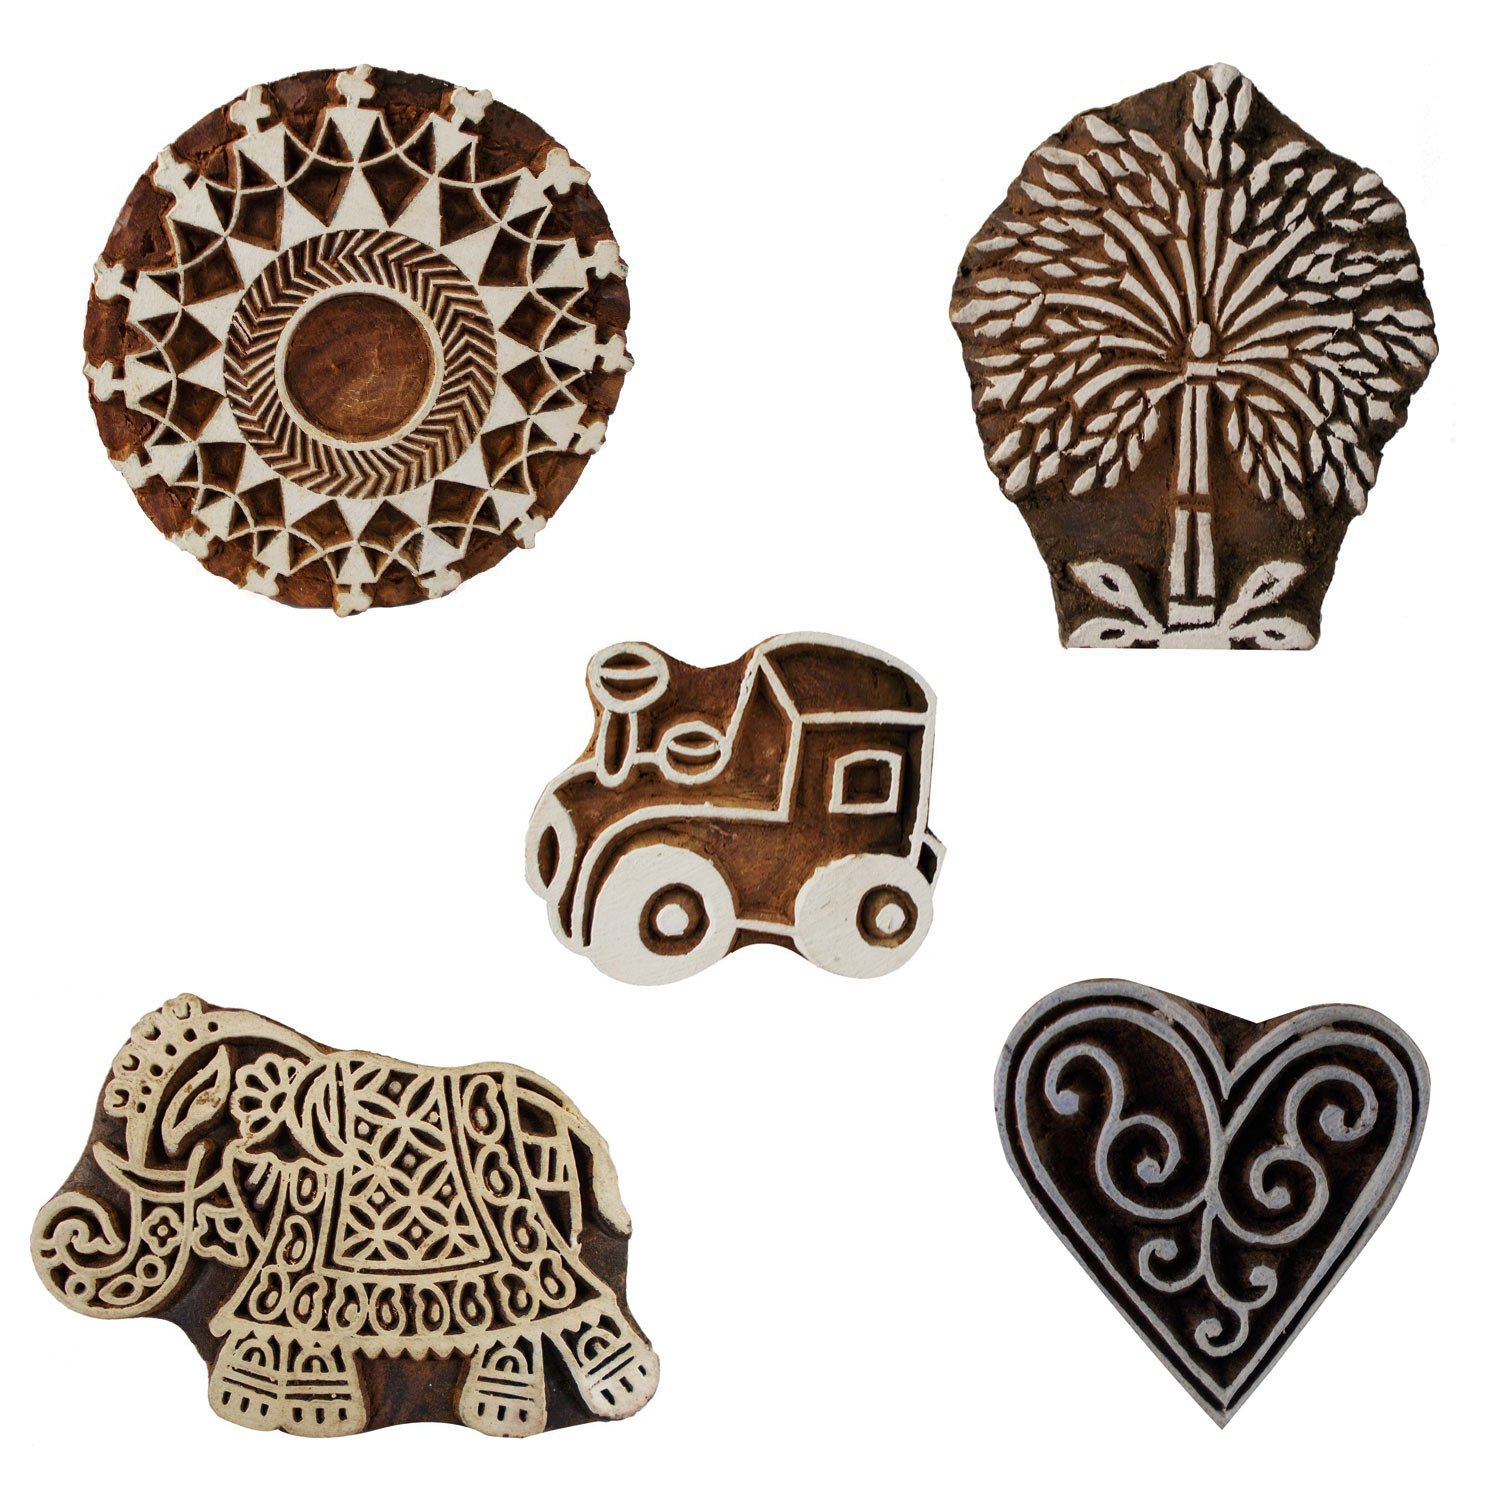 Bunch of 5 Wooden Textile Handmade Car Tree Elephant Floral Printing Block Clay Potter Craft Scrapbook Stamps